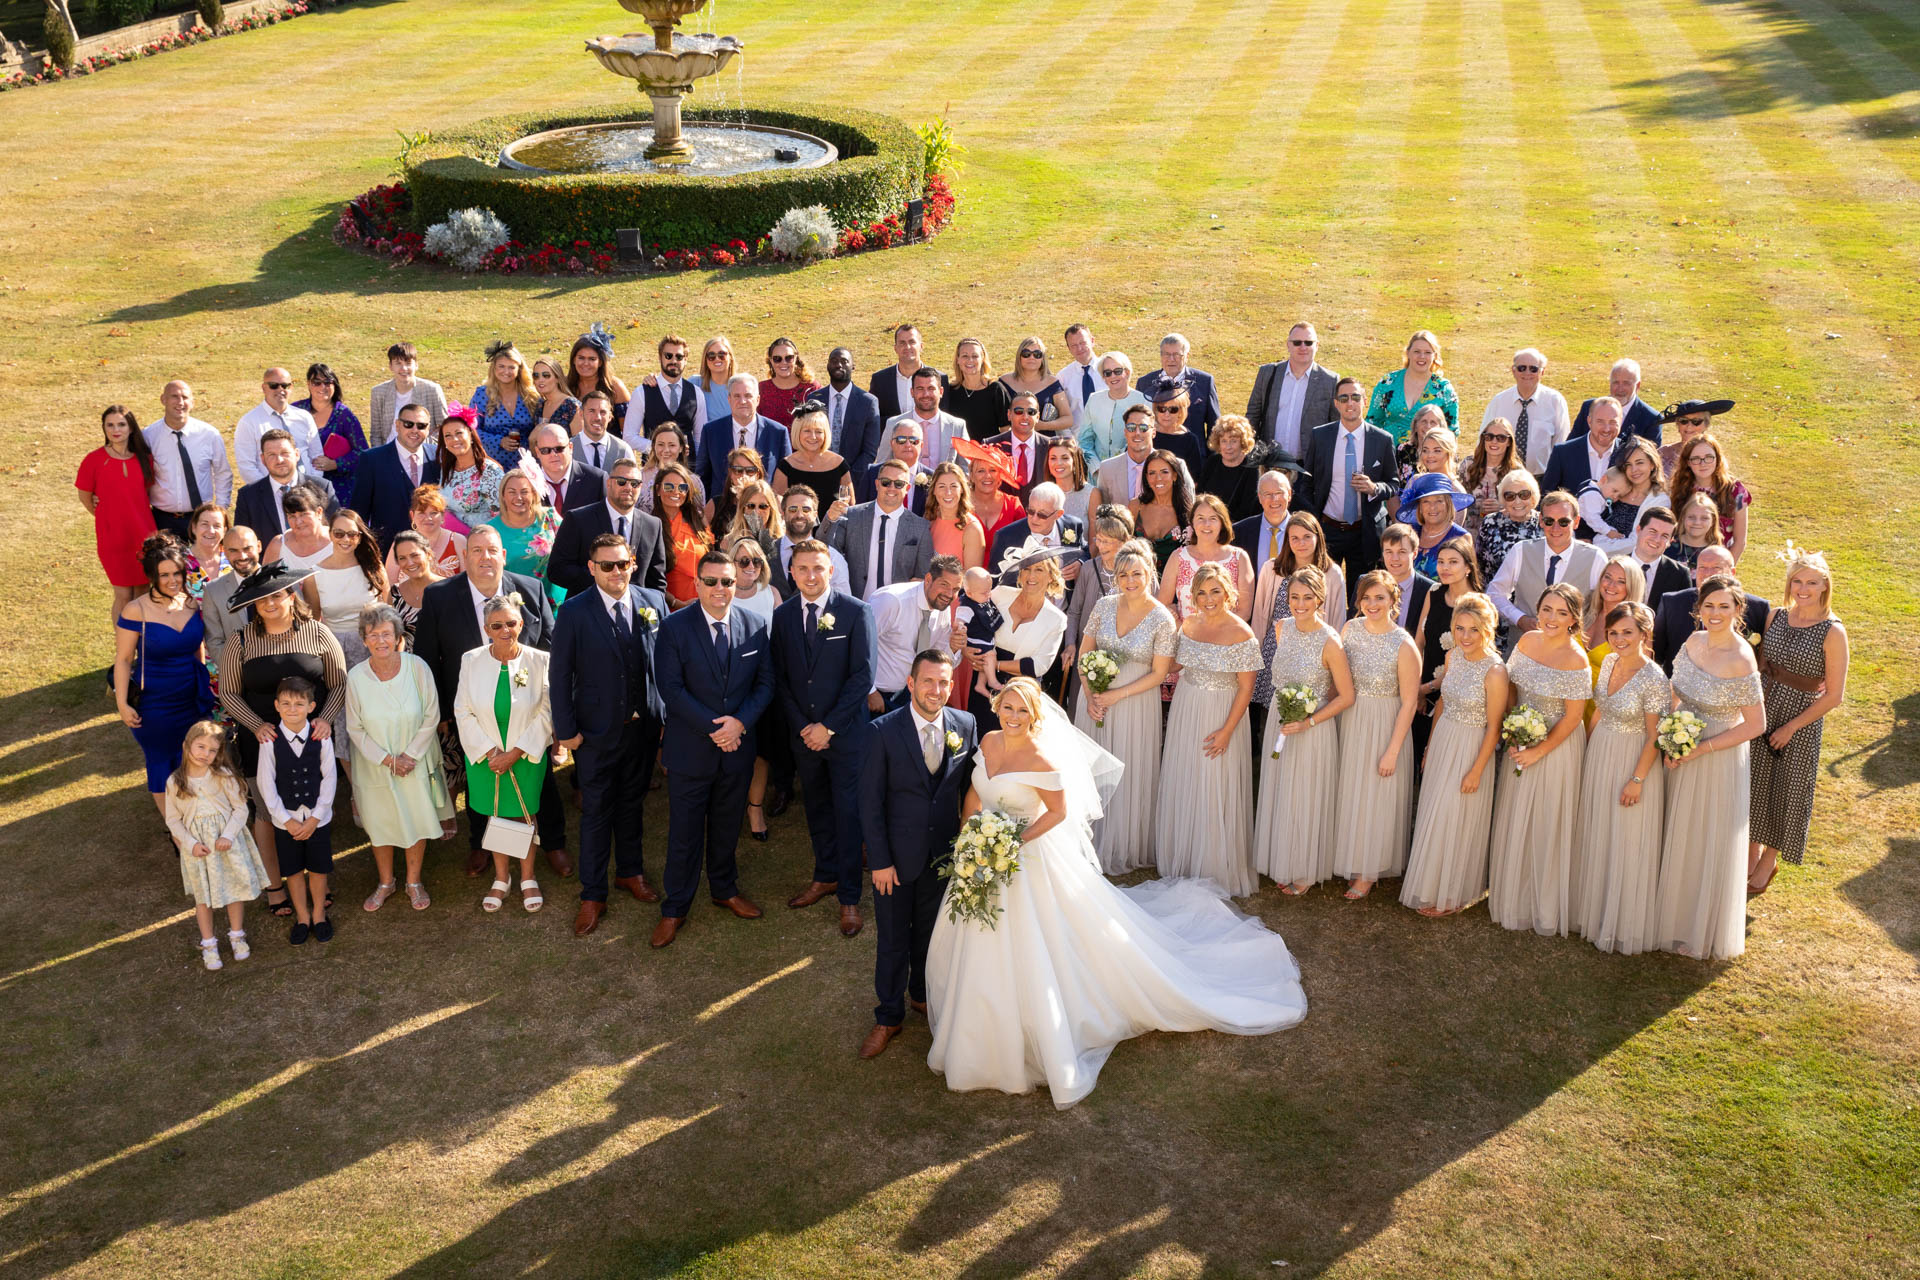 Wedding group photograph at The Lawn Rochford Essex